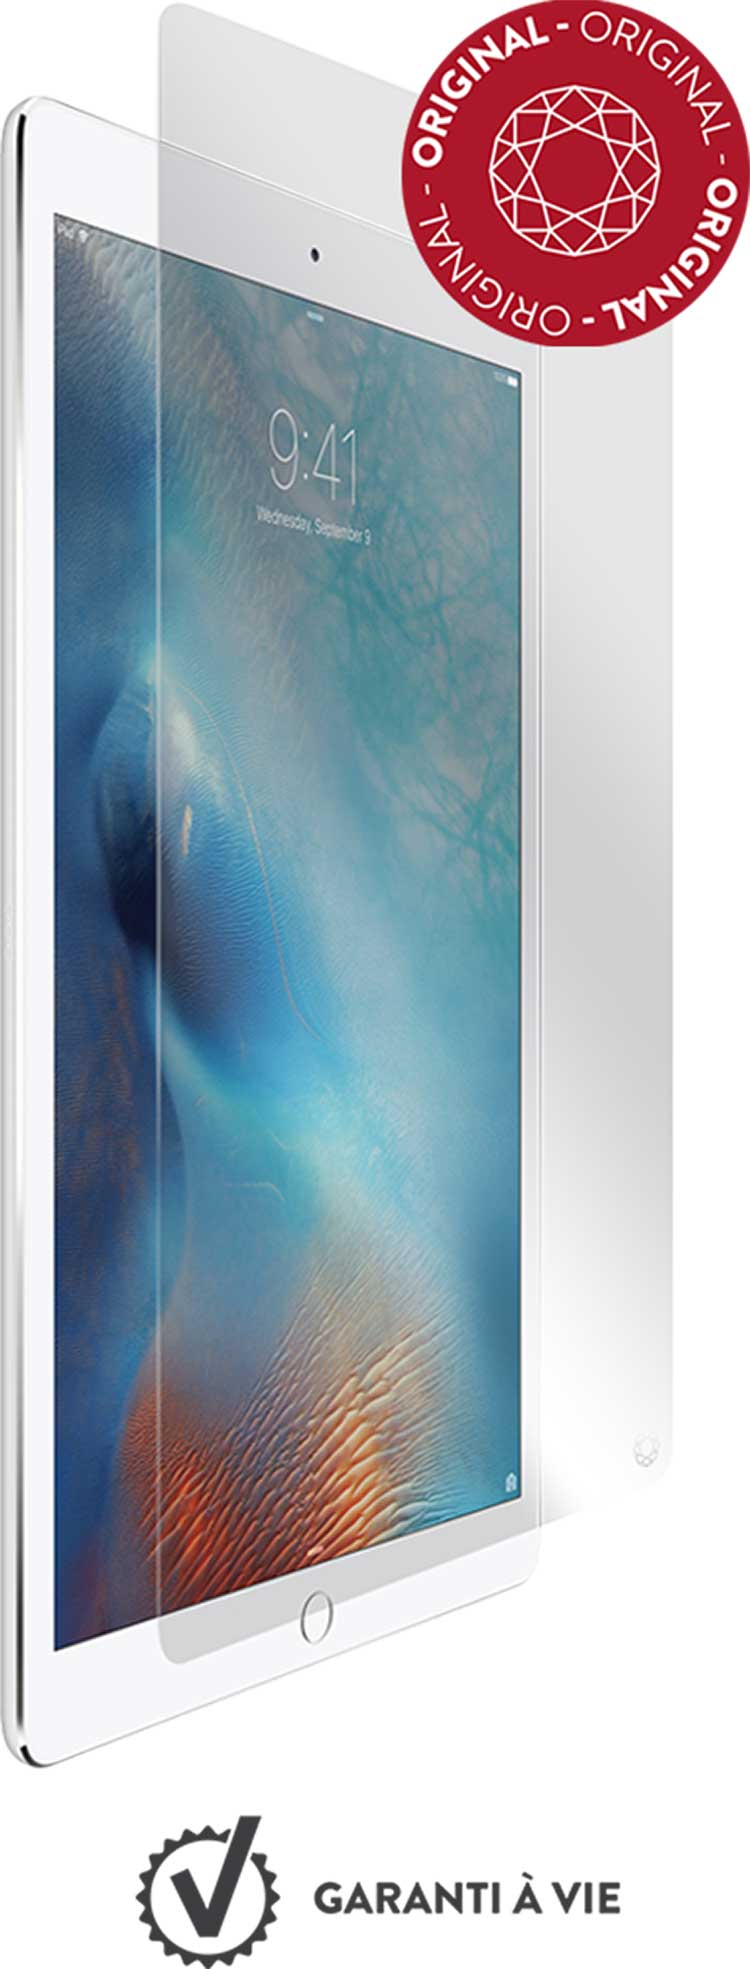 The tempered glass screen protector FORCE GLASS for iPad Pro 12.9 - Packshot